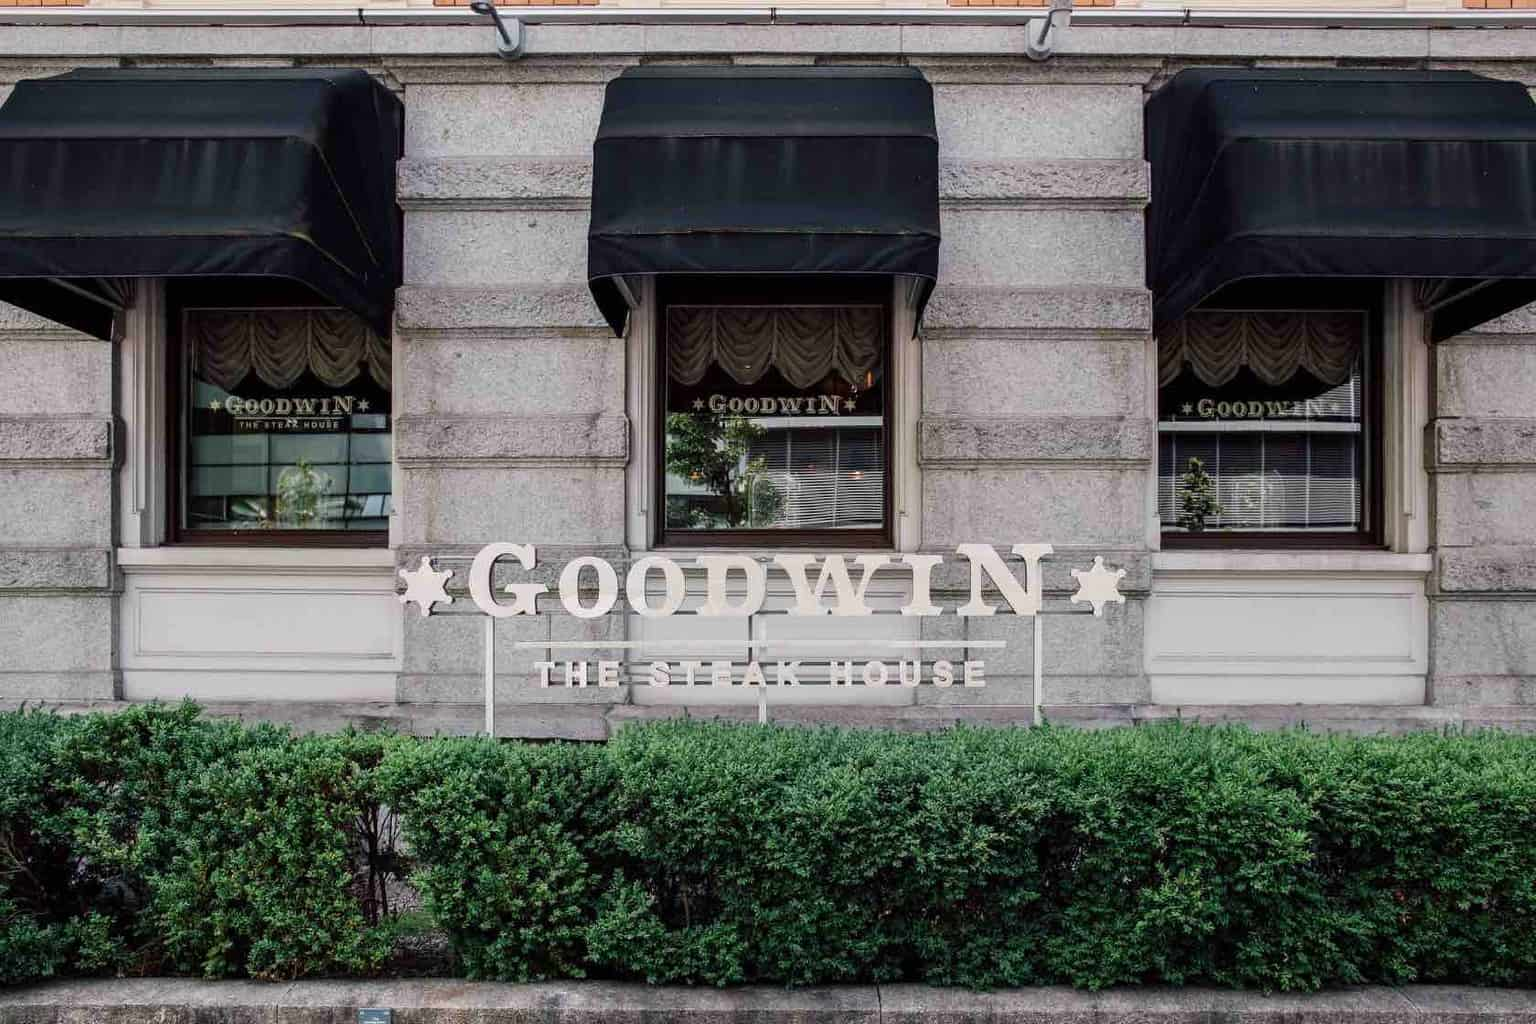 Goodwin Steak House Zurich